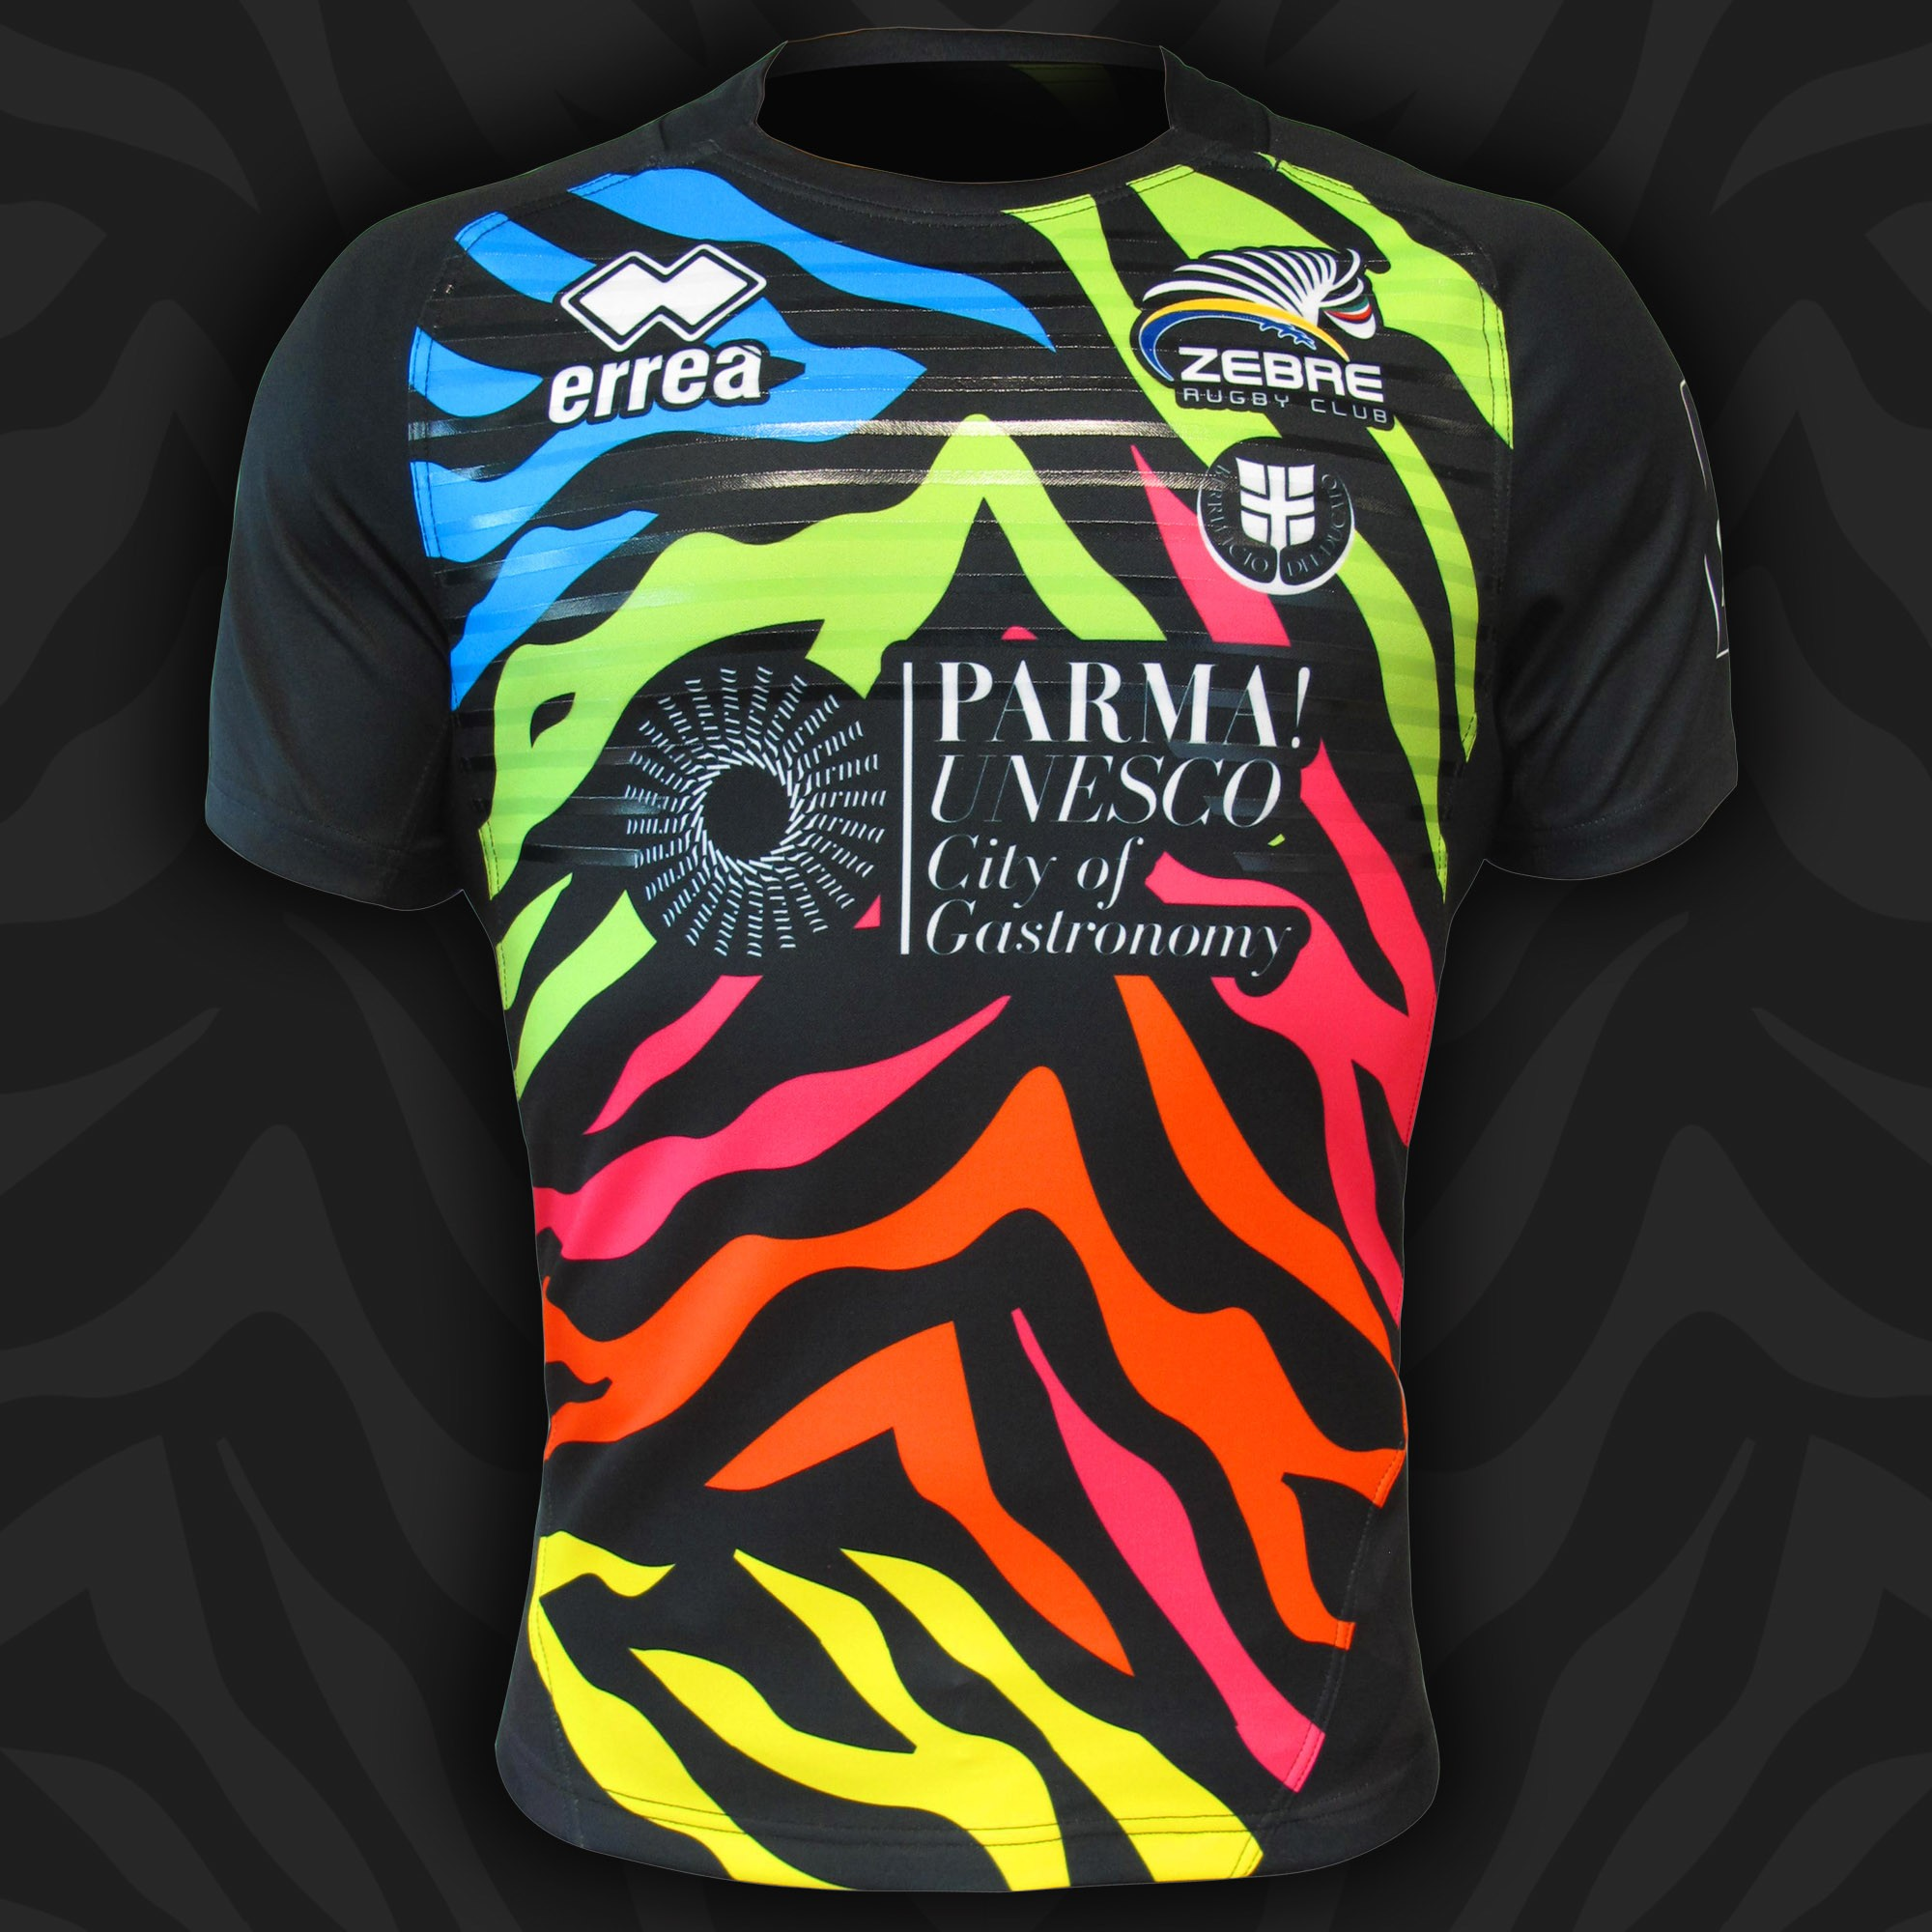 Zebre have taken to the pitch against the Cheetahs sporting their new second kit from Erreà!